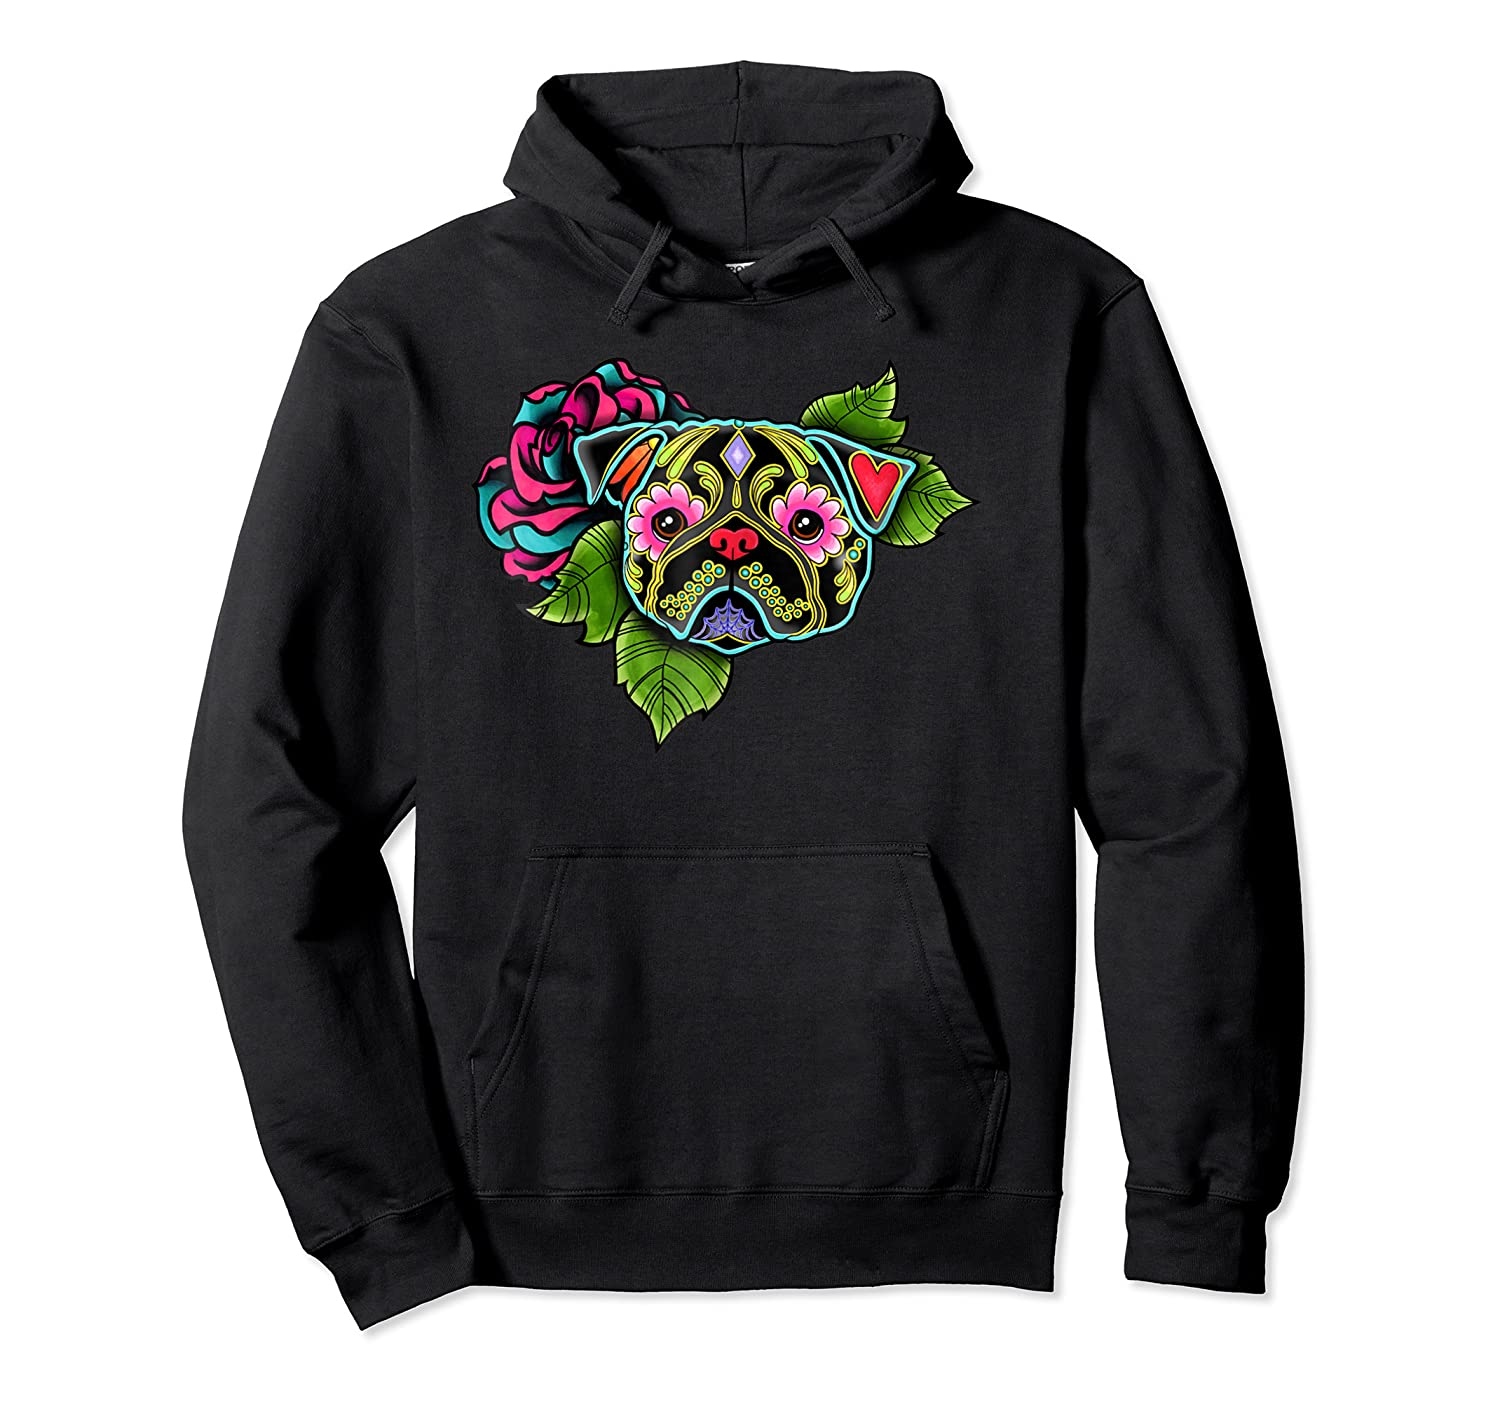 Black Pug Day Of The Dead Sugar Skull Dog Shirts Unisex Pullover Hoodie